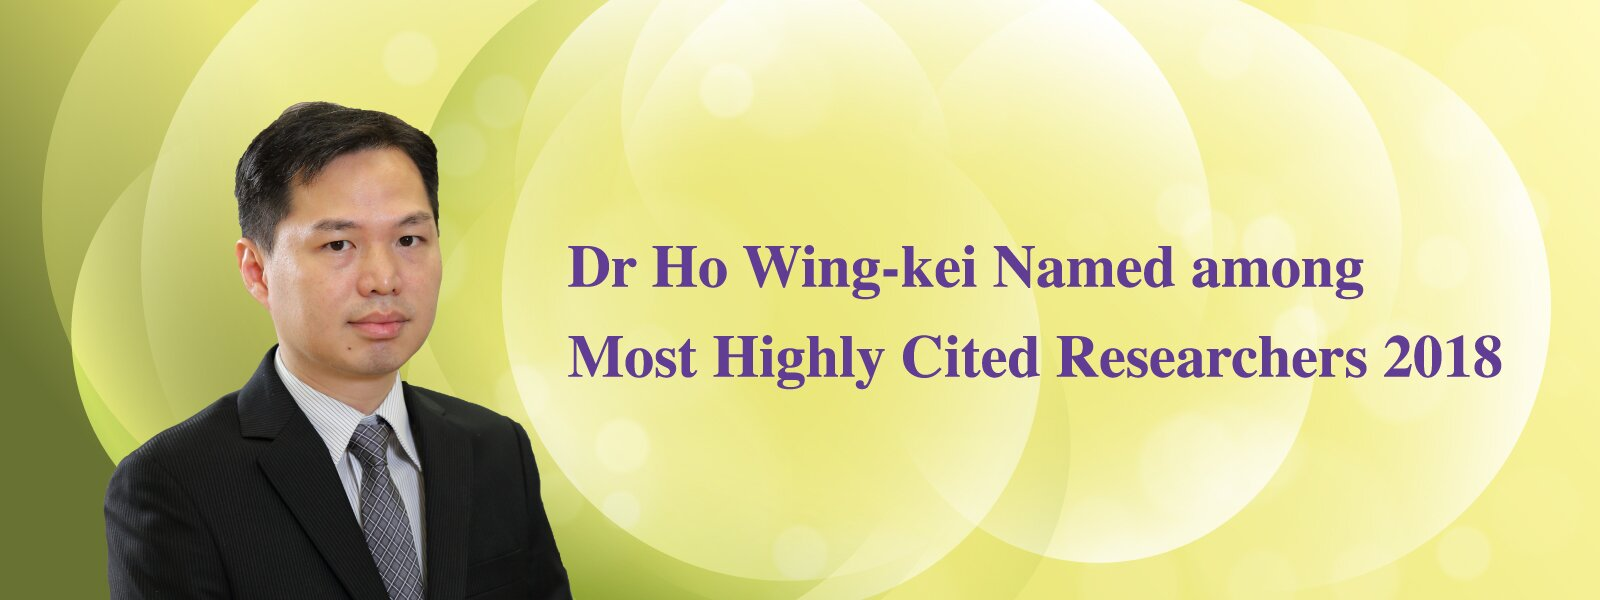 Dr Ho Wing-kei Named among Most Highly Cited Researchers 2018